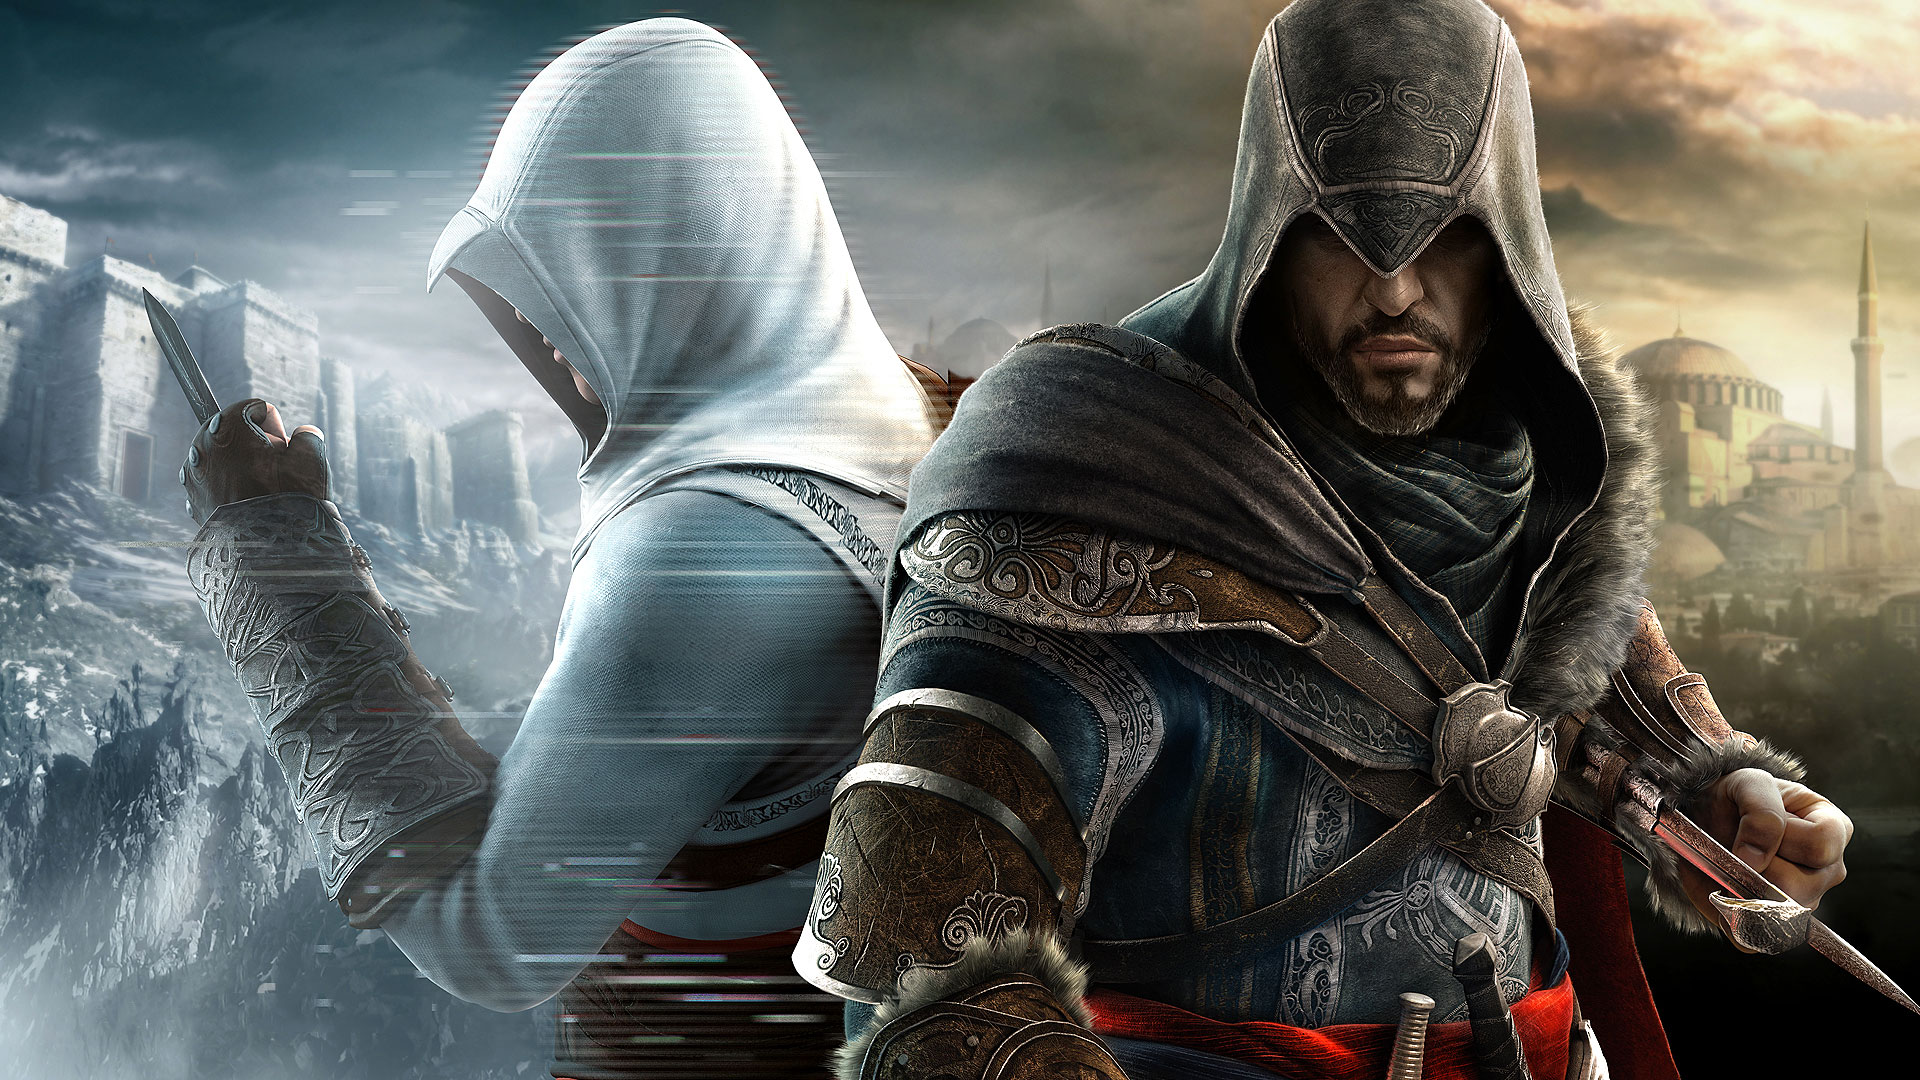 Assassins Creed Revelations Wallpapers in HD 1920x1080